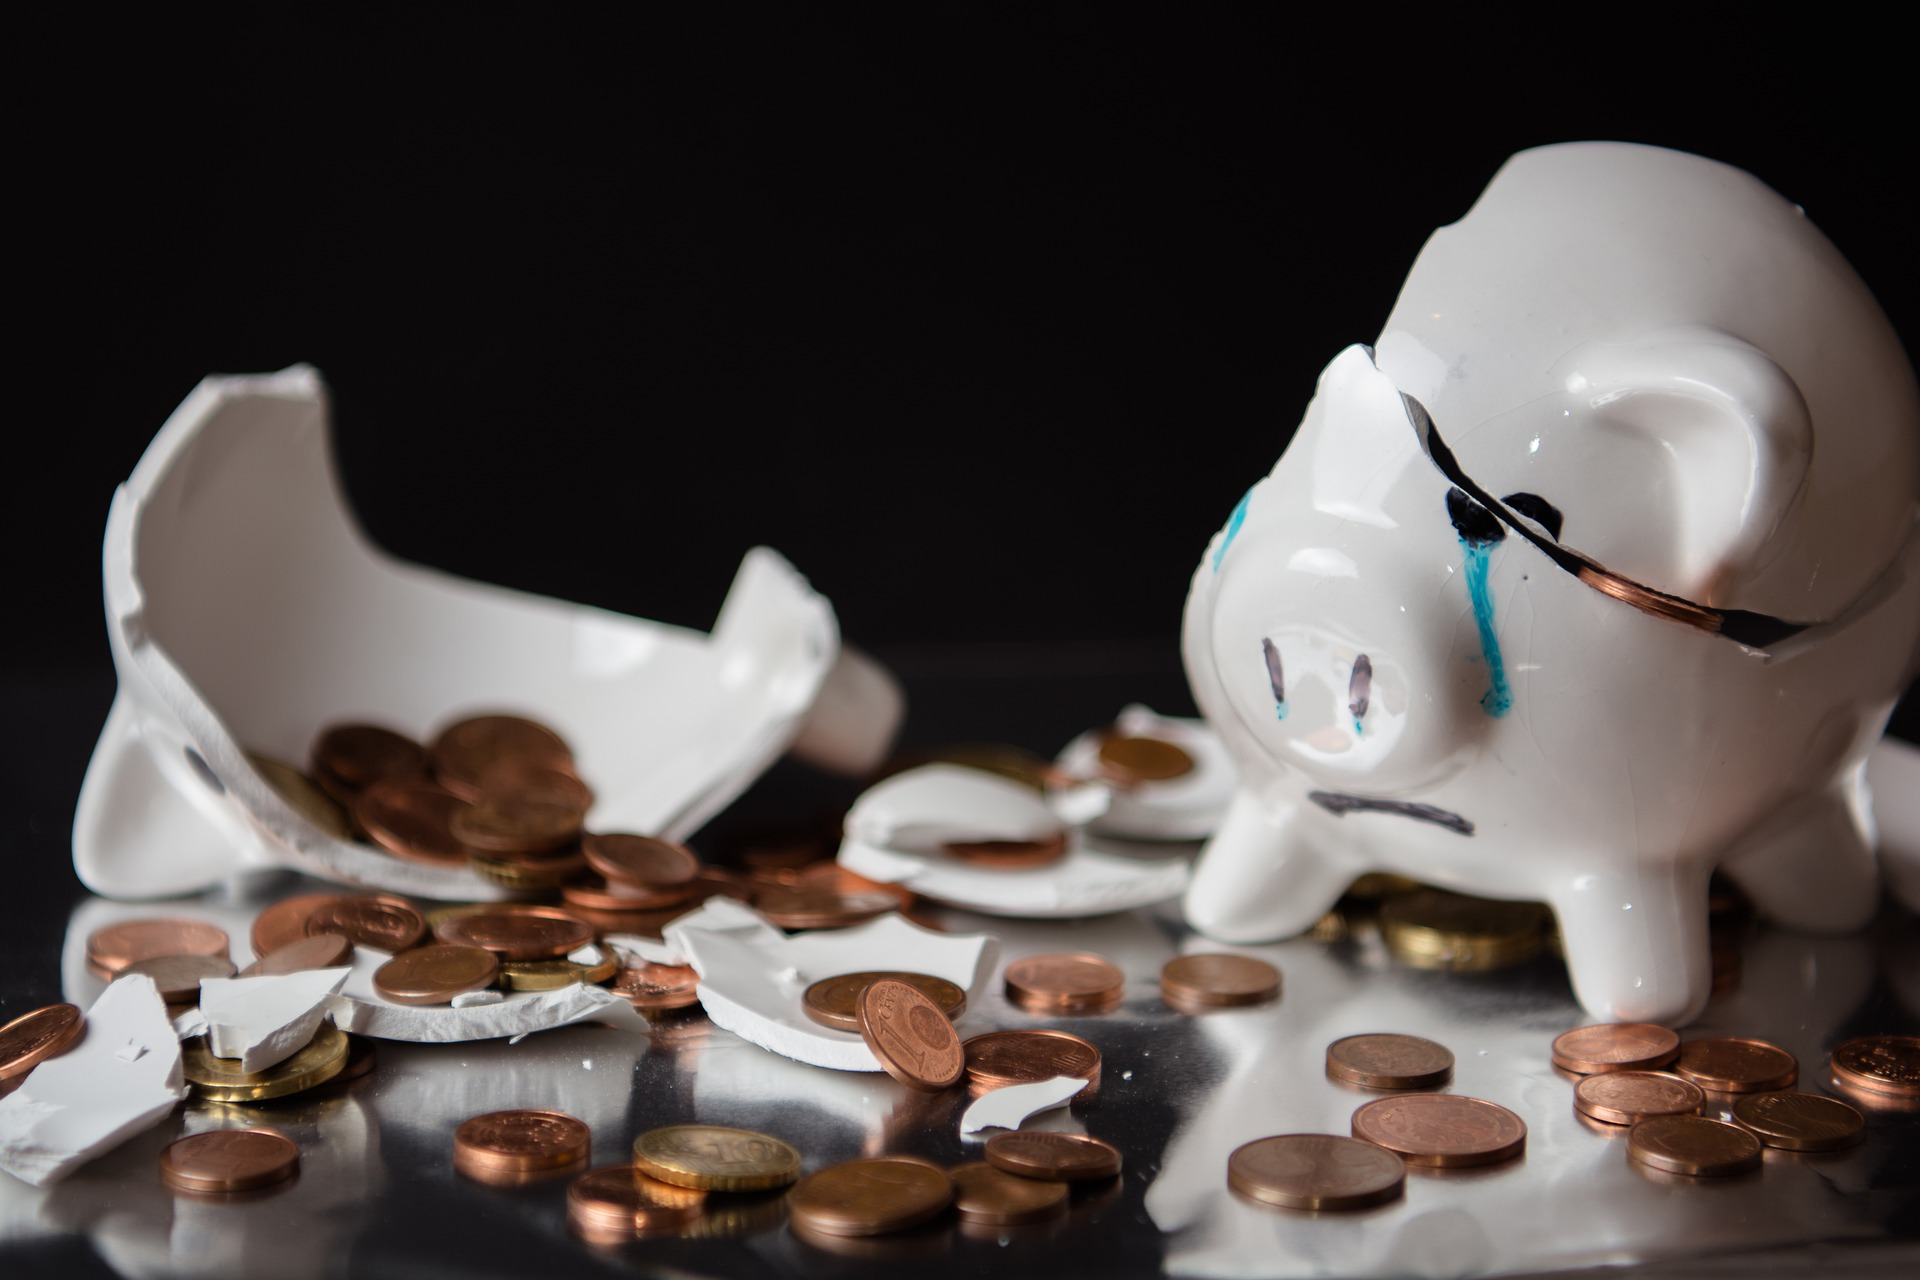 Broken piggy bank with spilled coins